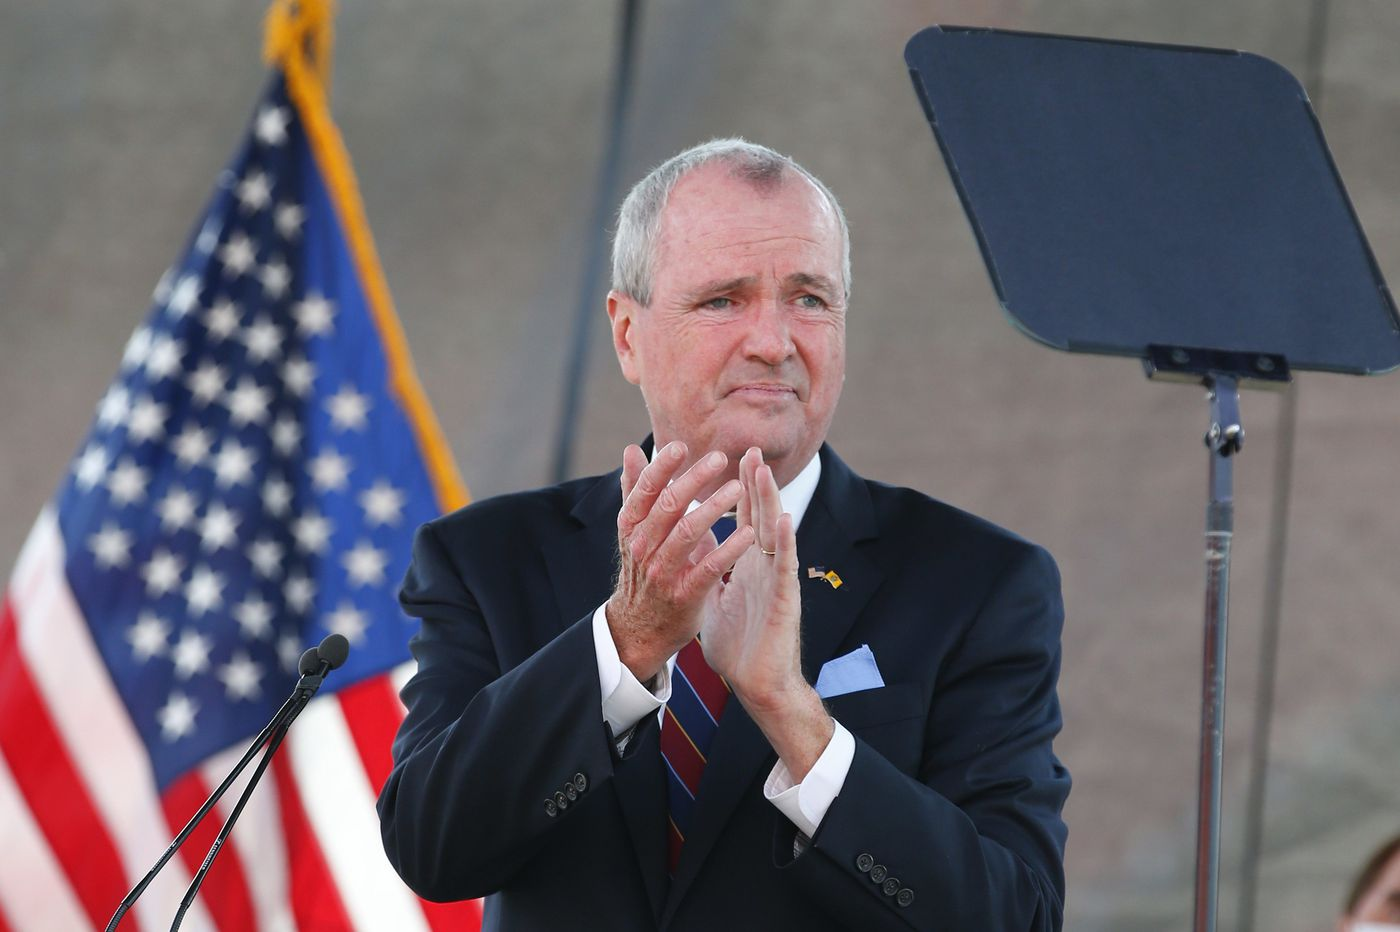 Murphy signs $32.7 billion N.J. budget that raises taxes on millionaires and businesses